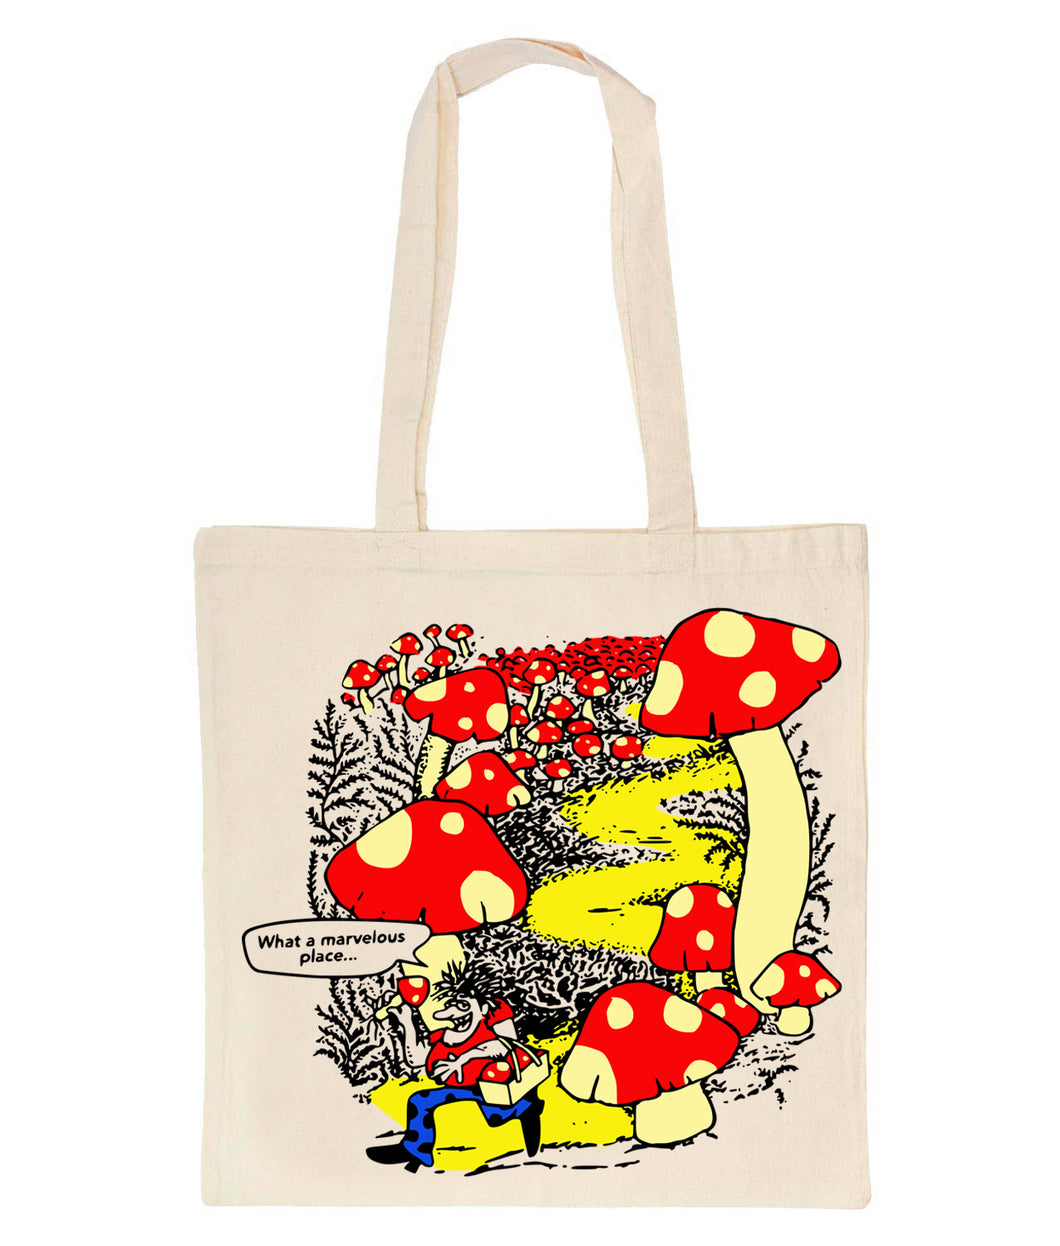 Marvelous Tote Bag (NATURAL)